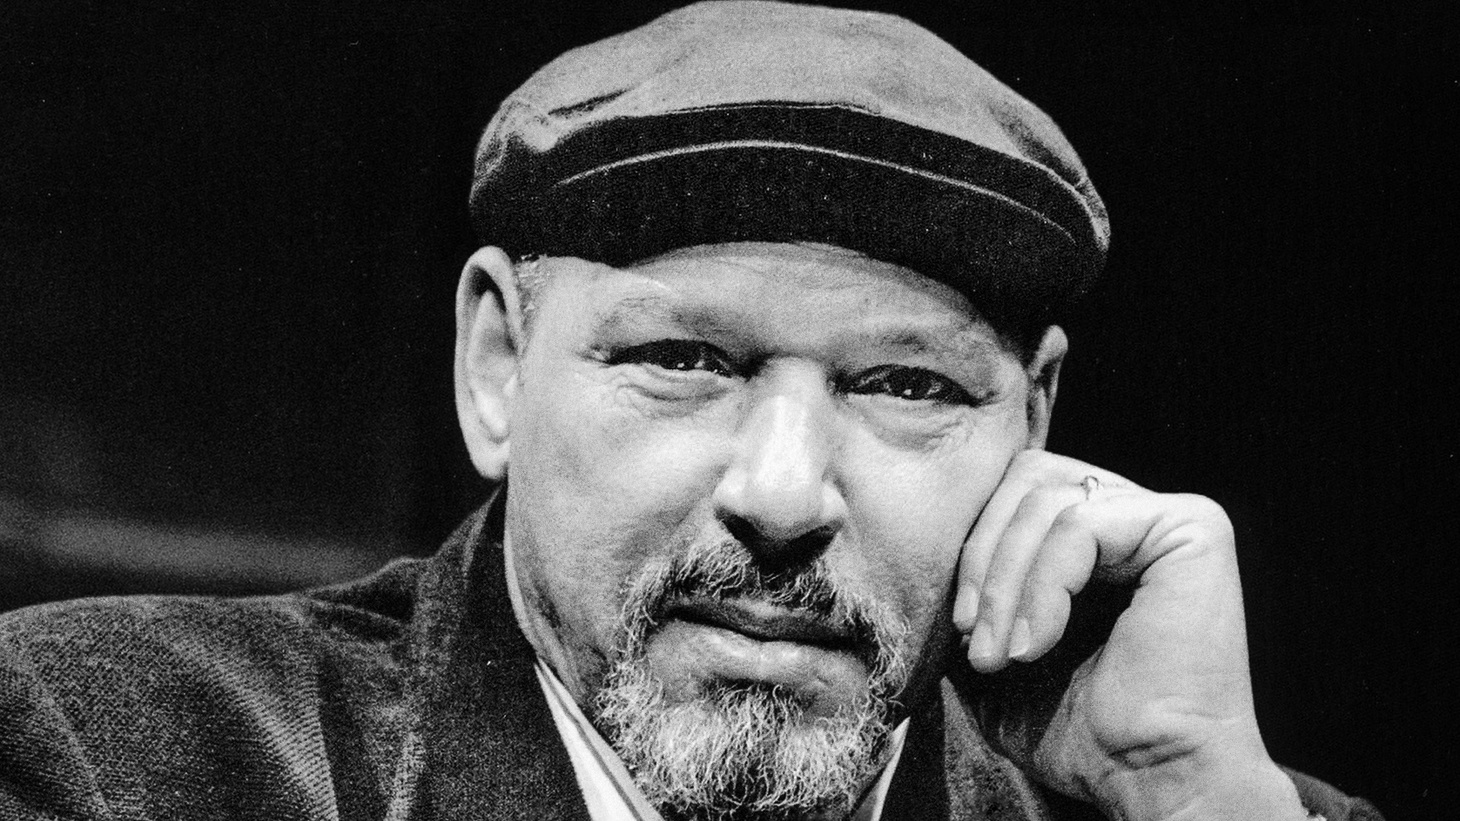 August Wilson is considered among the greatest American playwrights. A new Netflix documentary looks at his work through the eyes of high school students.